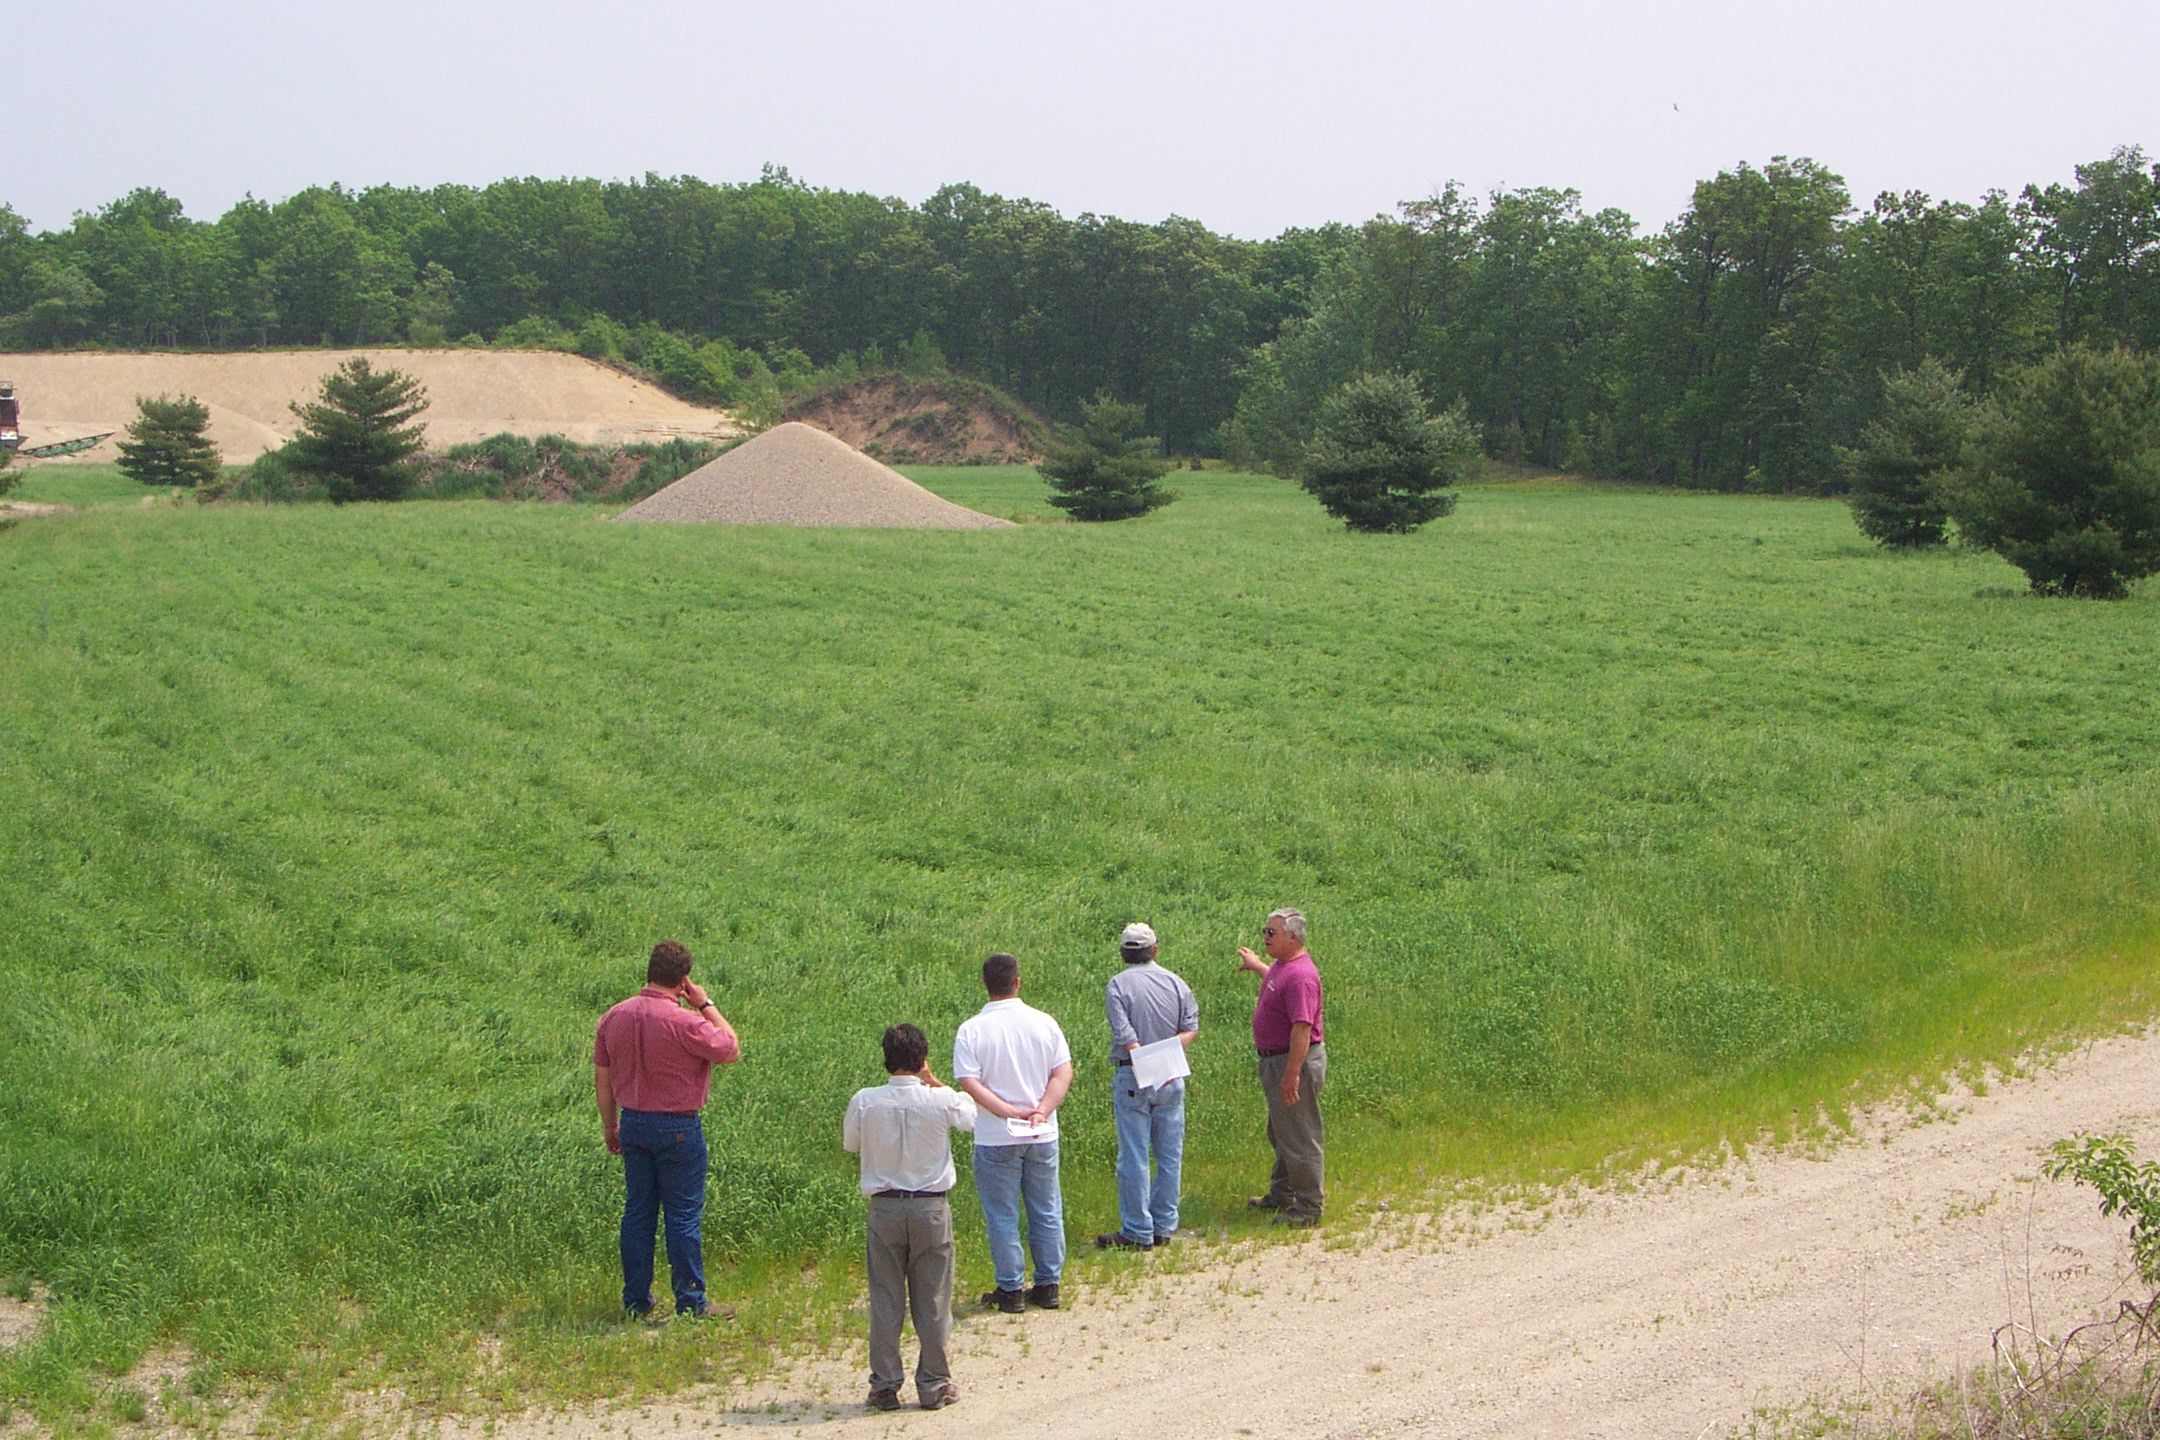 A gravel mining area restored for hay production, 2006, central MA.